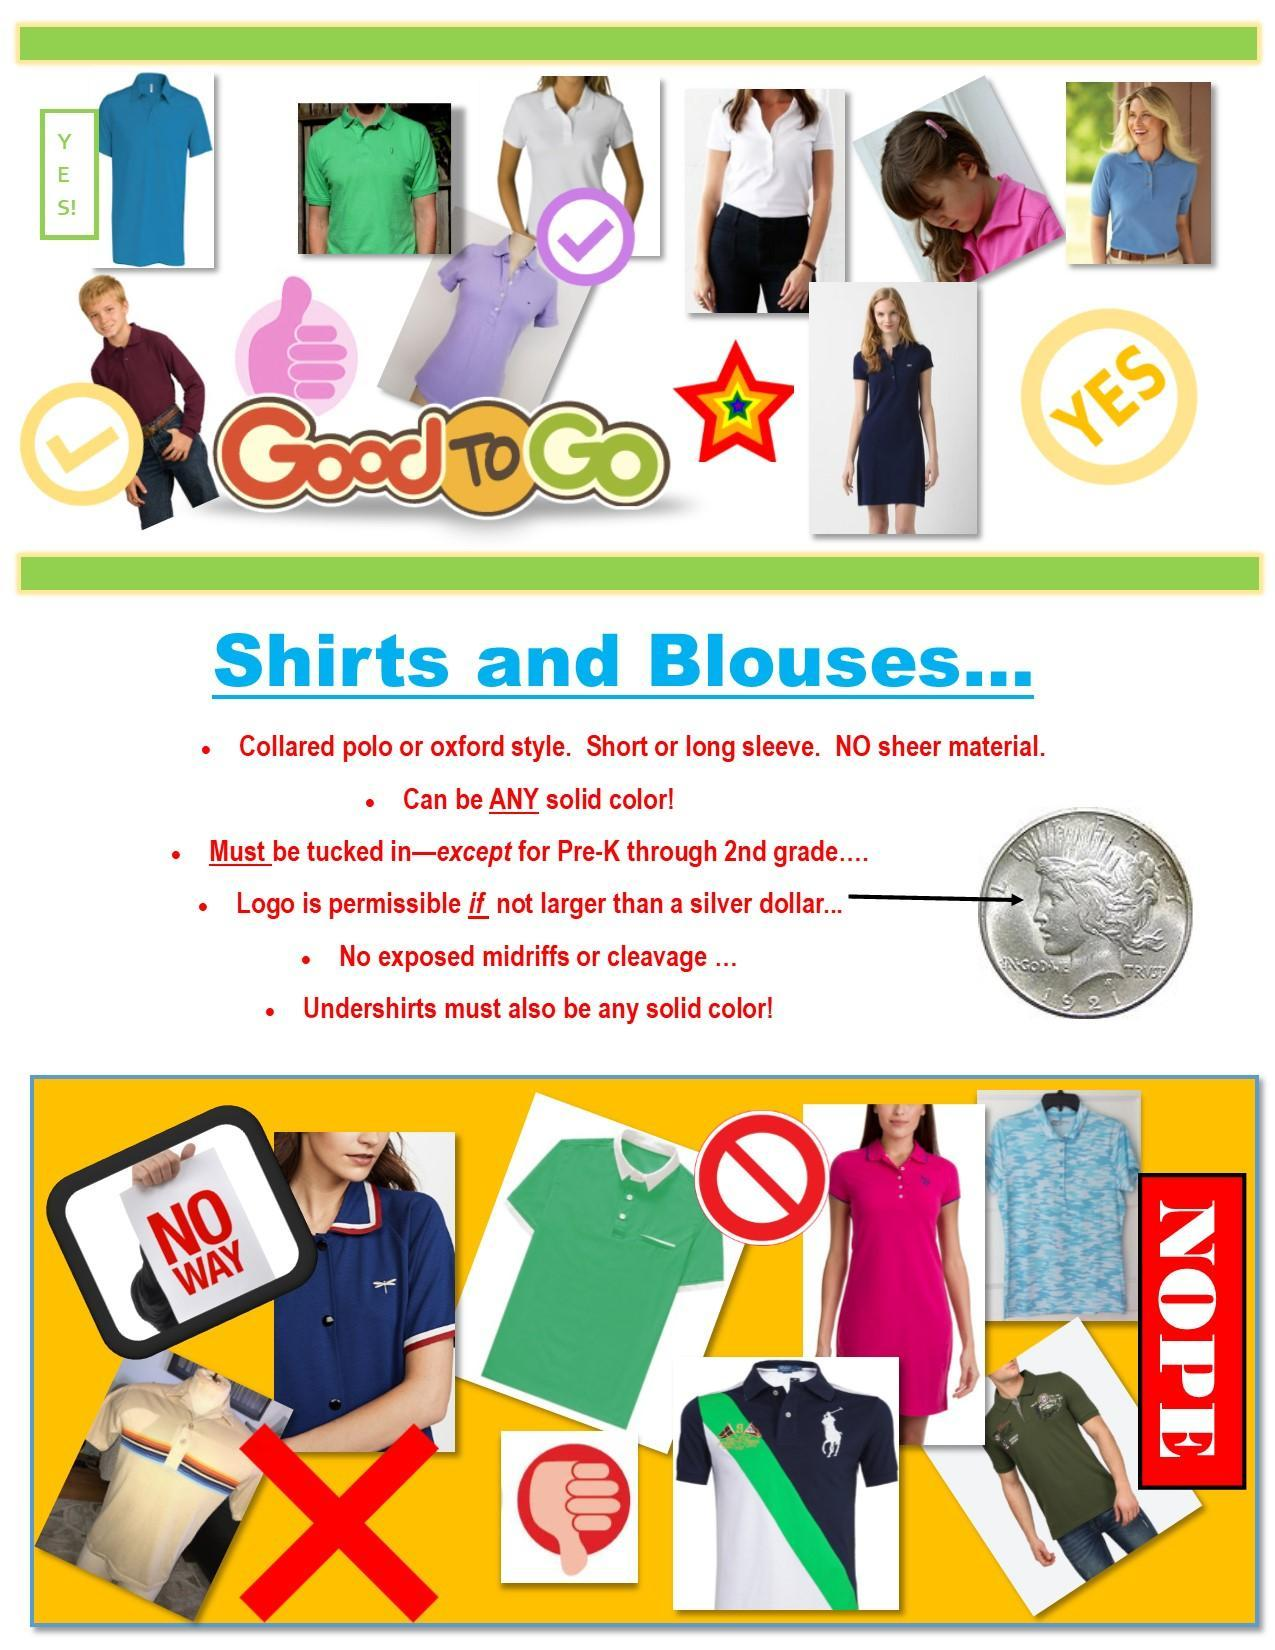 shirts and dresses flyer for dress code